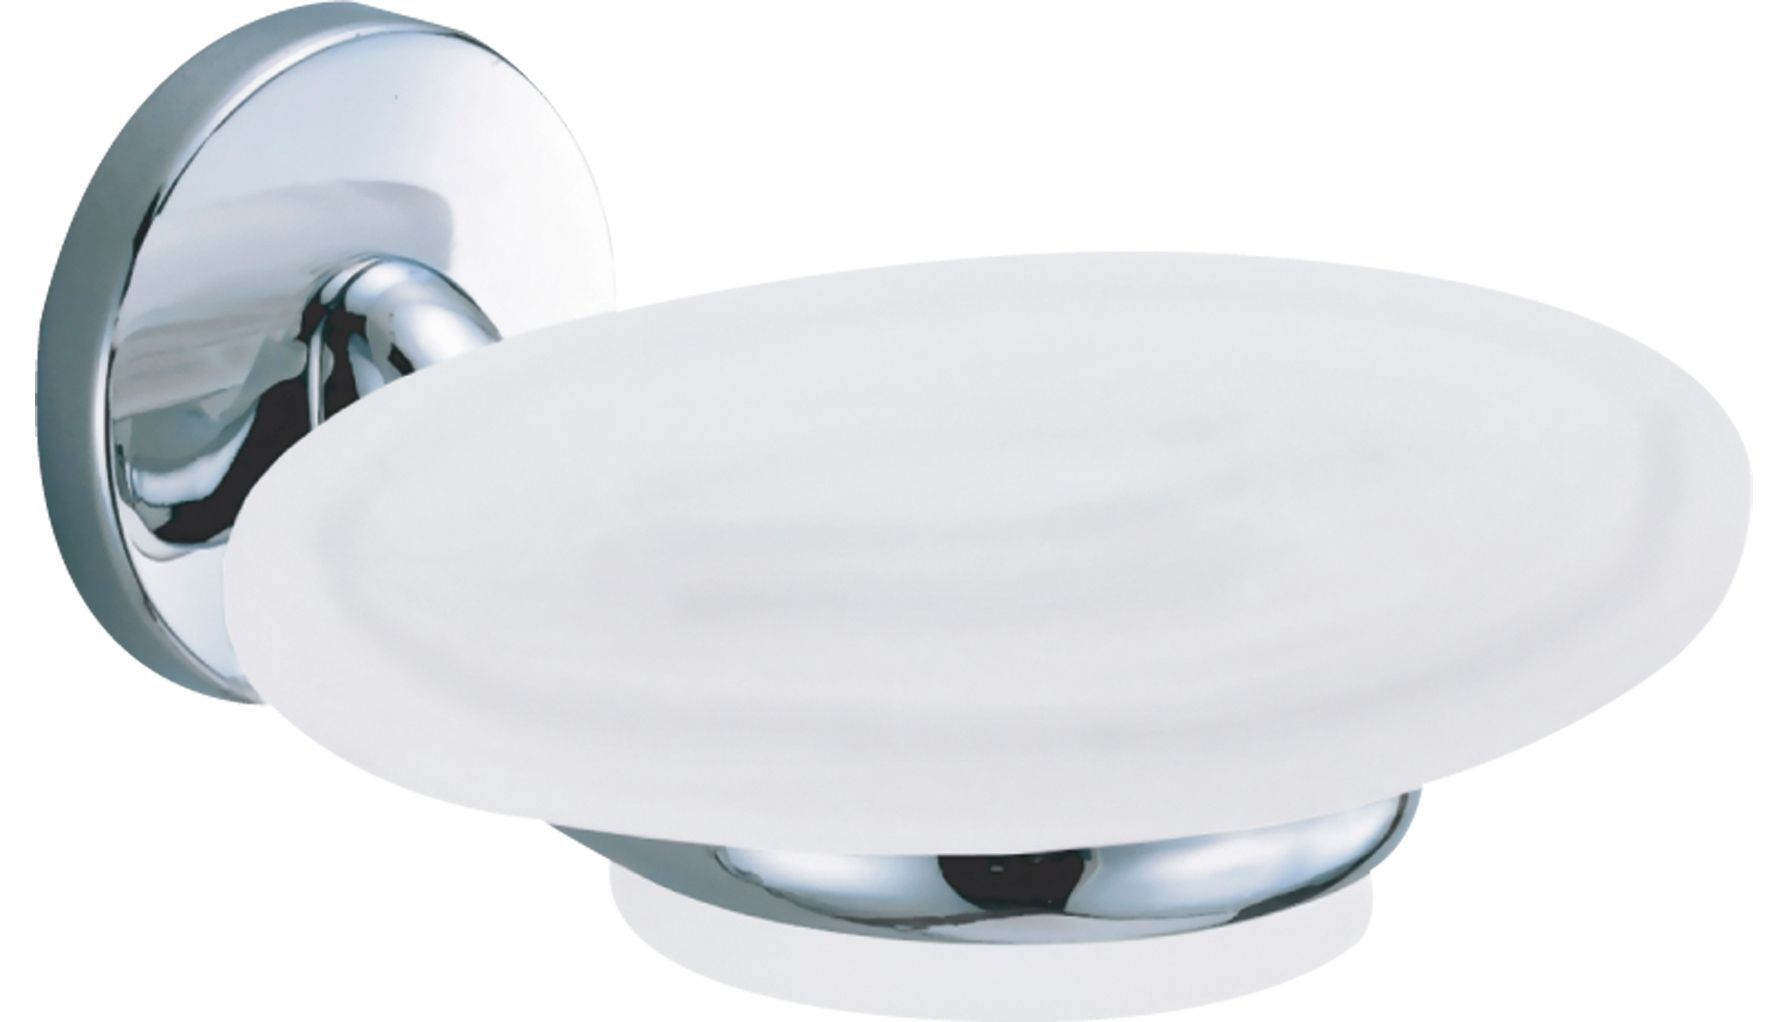 B&q Curve White Chrome Effect Wall Mounted Soap Dish